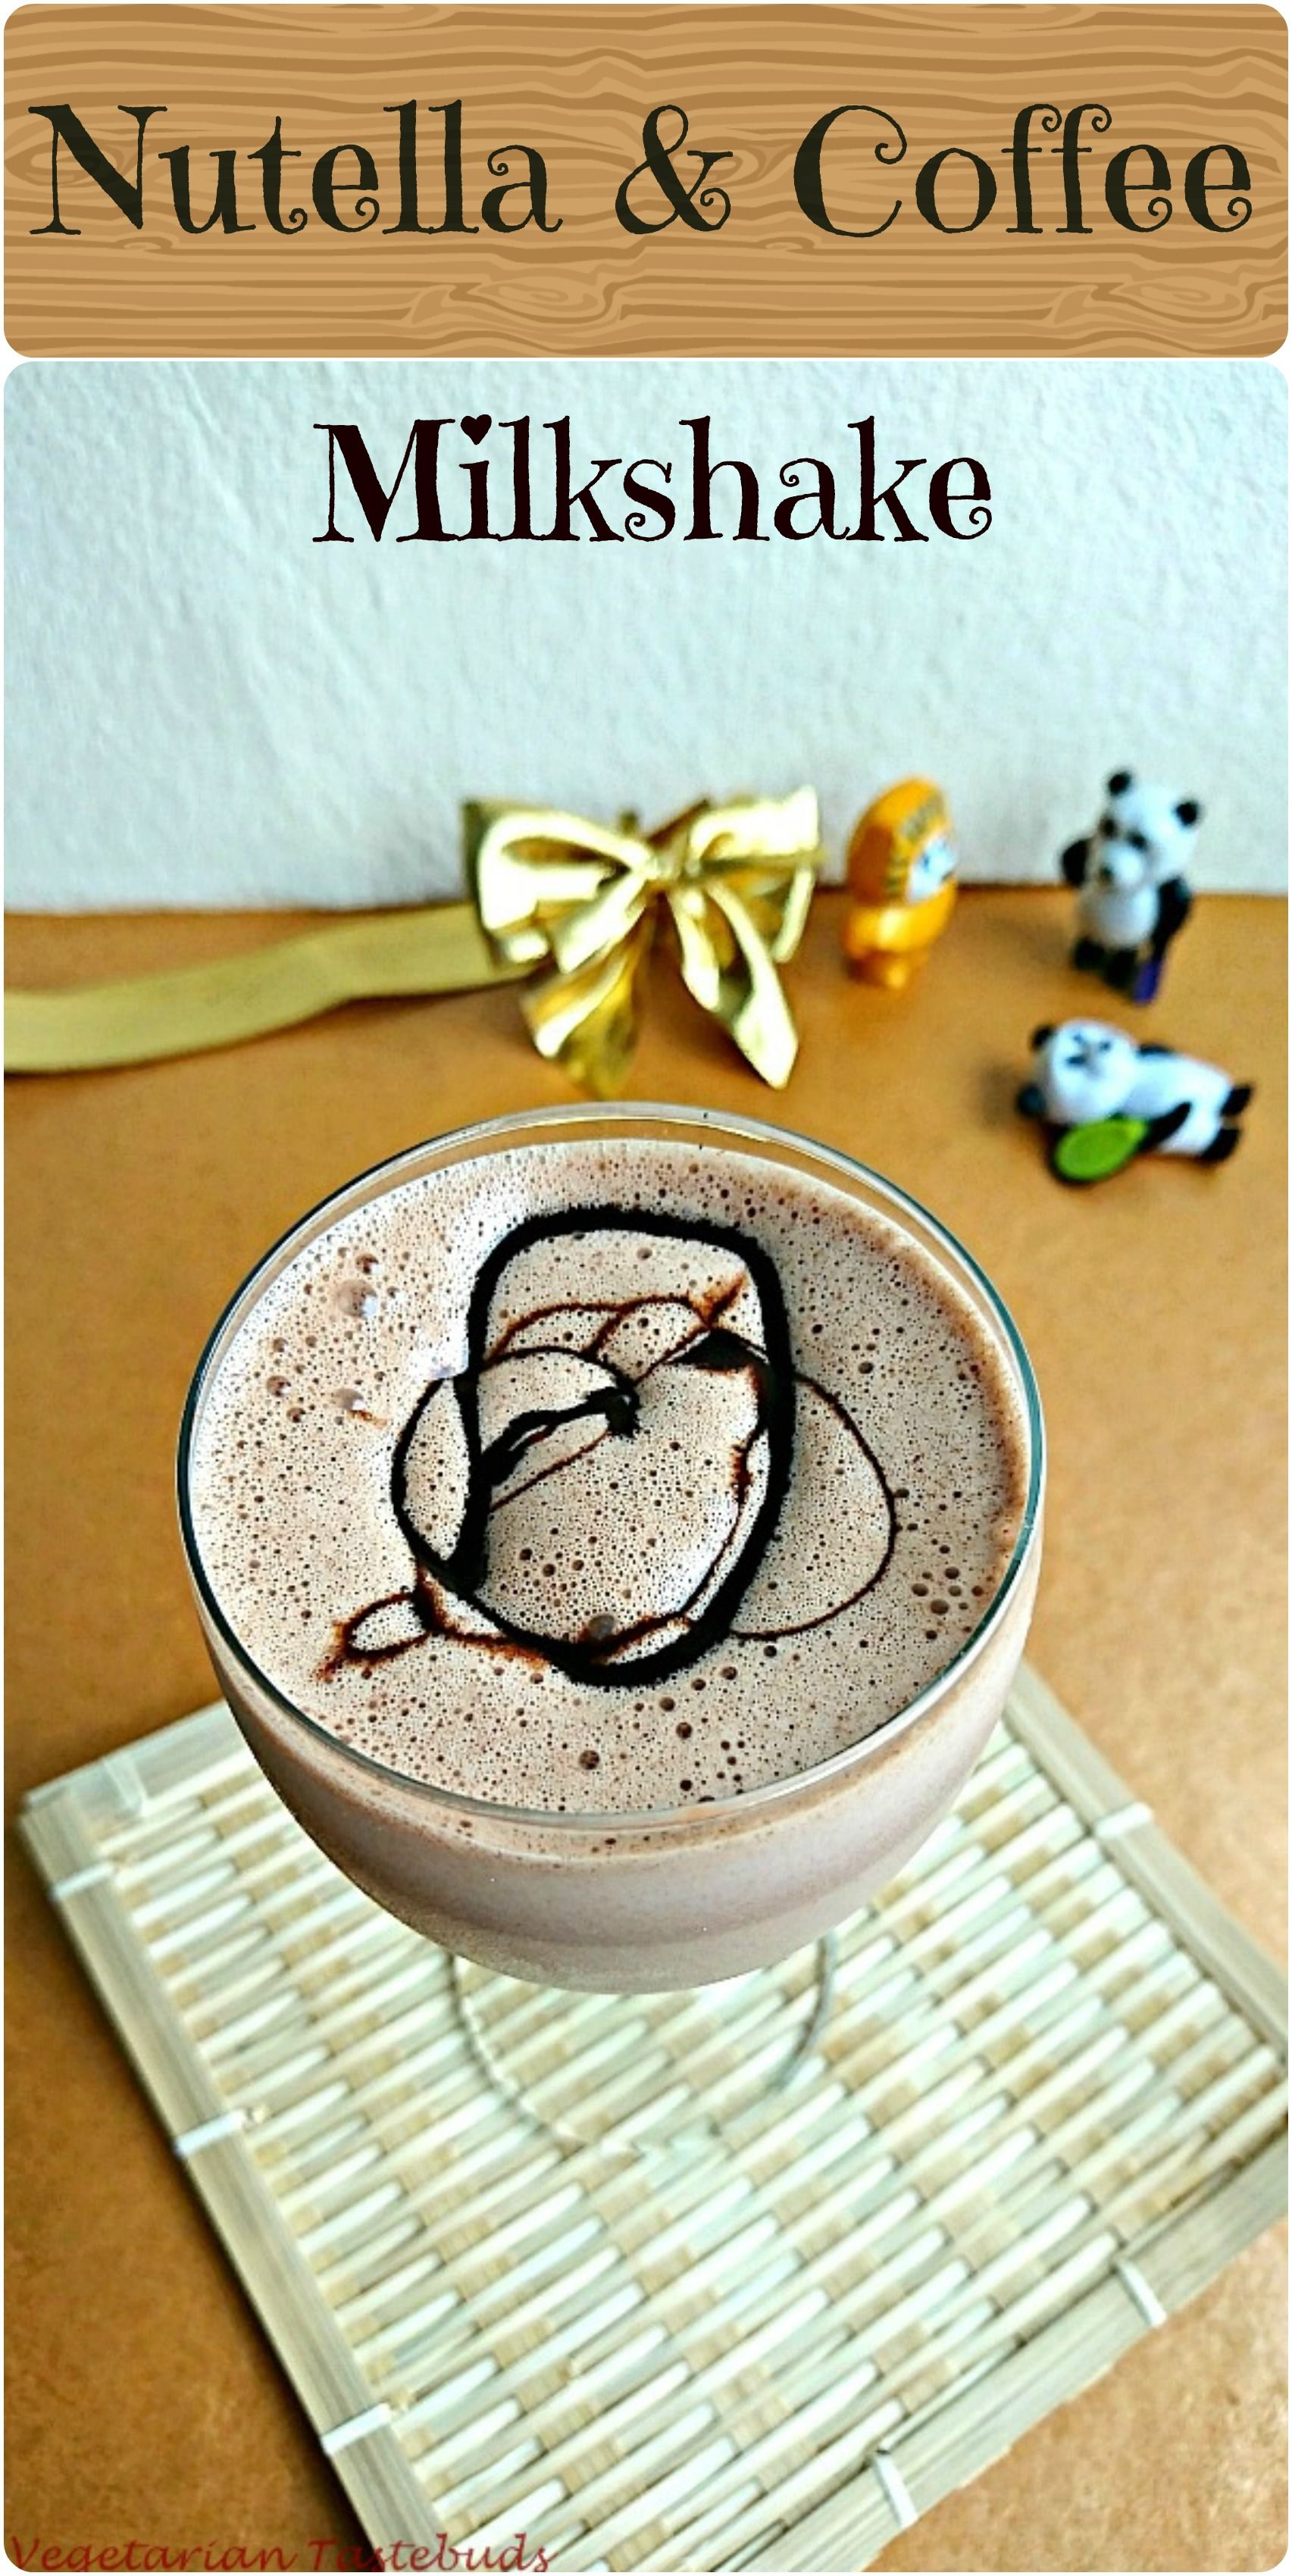 Nutella coffee milkshake recipenjoy indian food community nutella and coffee sounds temptingisnt it this a yummy and easy milkshake that will be loved by all addition of chocolate sauce before serving makes forumfinder Images